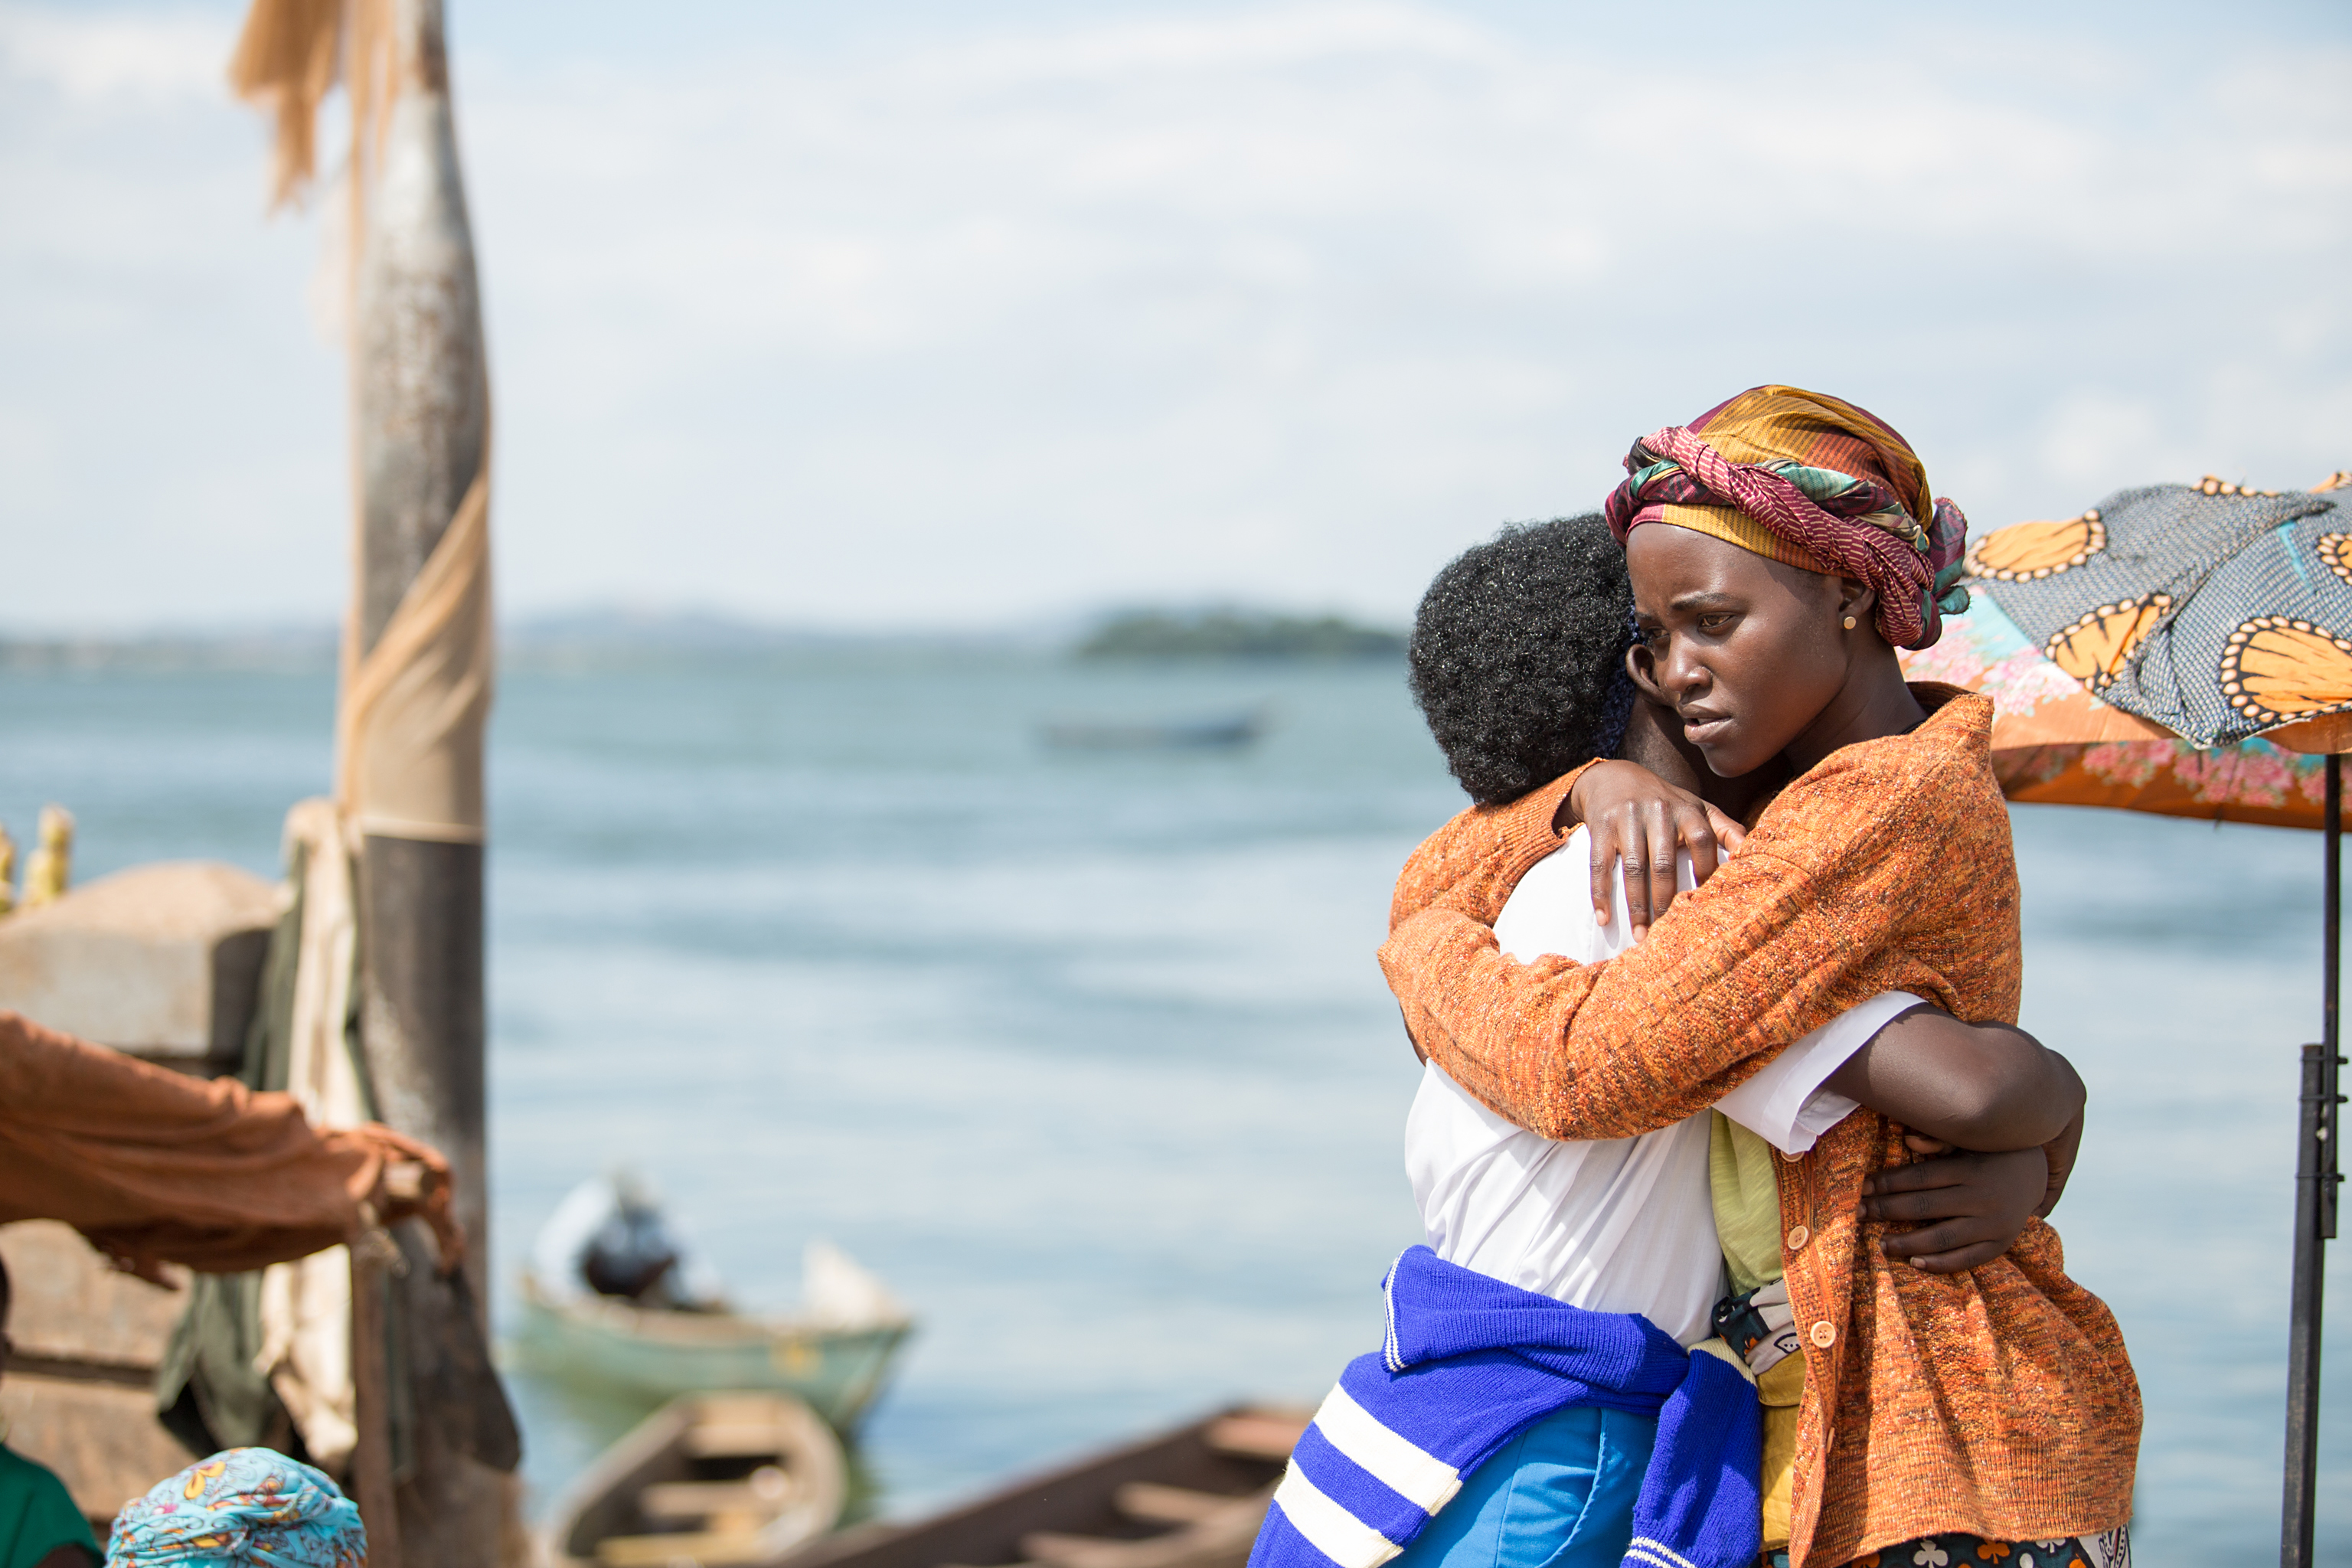 Lupita Nyong'o stars in Queen of Katwe